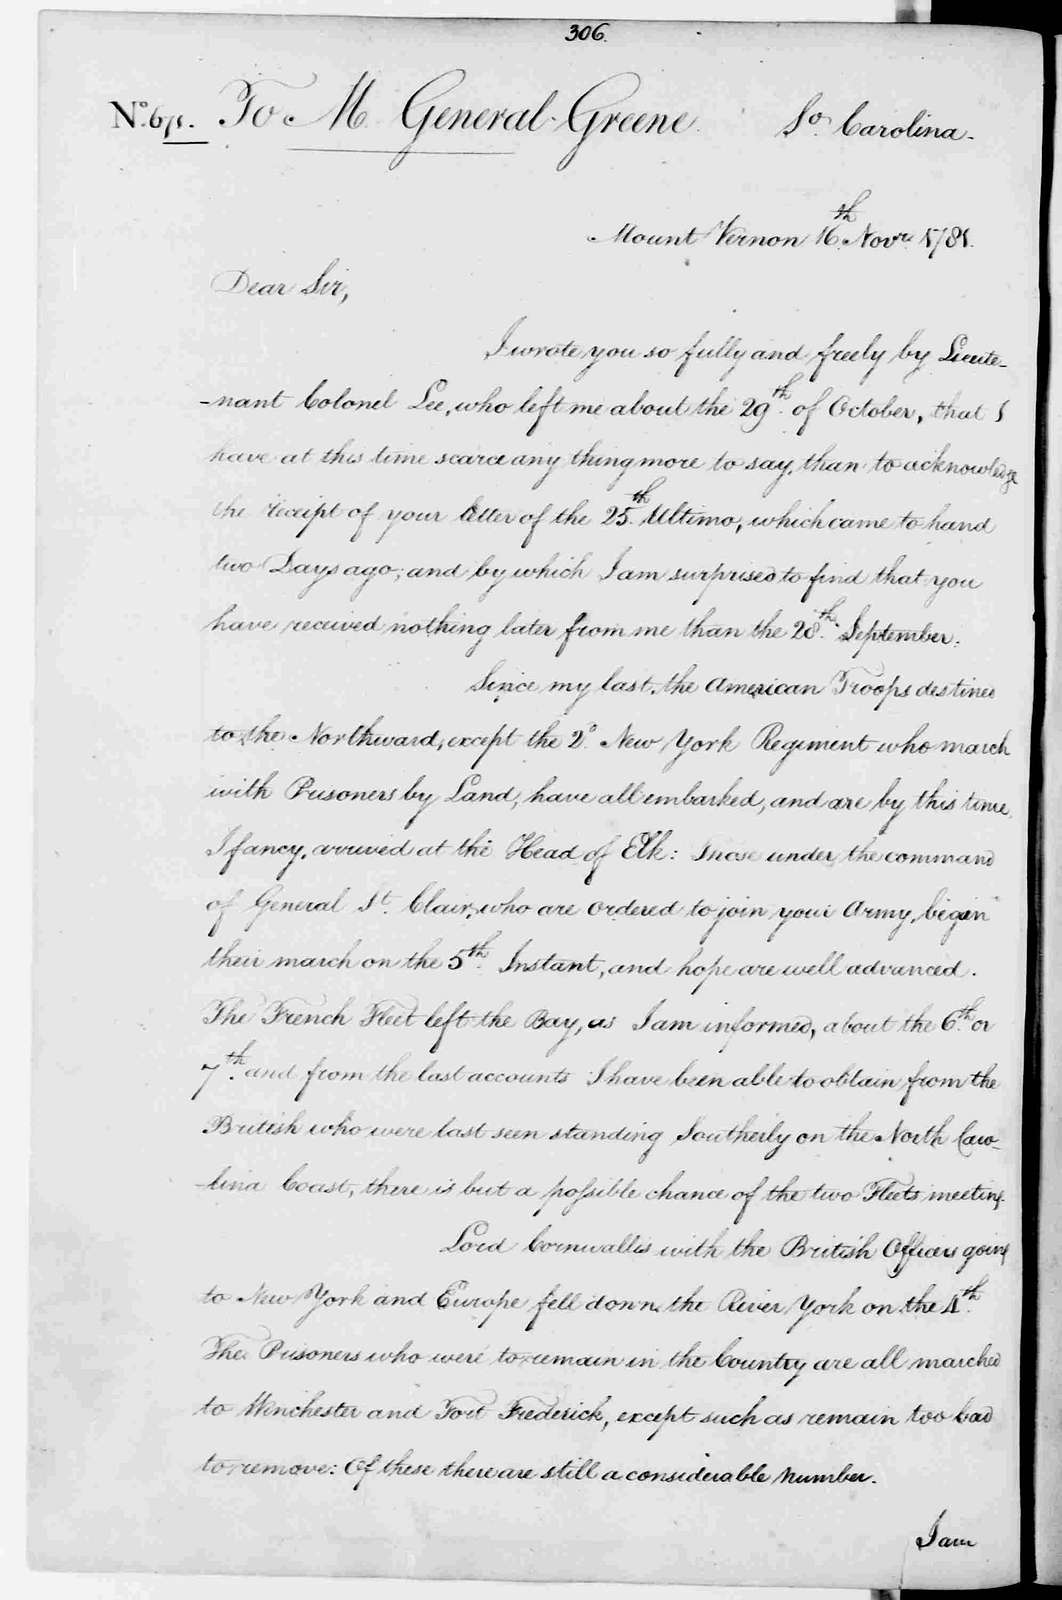 George Washington Papers, Series 3, Varick Transcripts, 1775-1785, Subseries 3B, Continental and State Military Personnel, 1775-1783, Letterbook 14: June 11, 1781 - Feb. 28, 1782